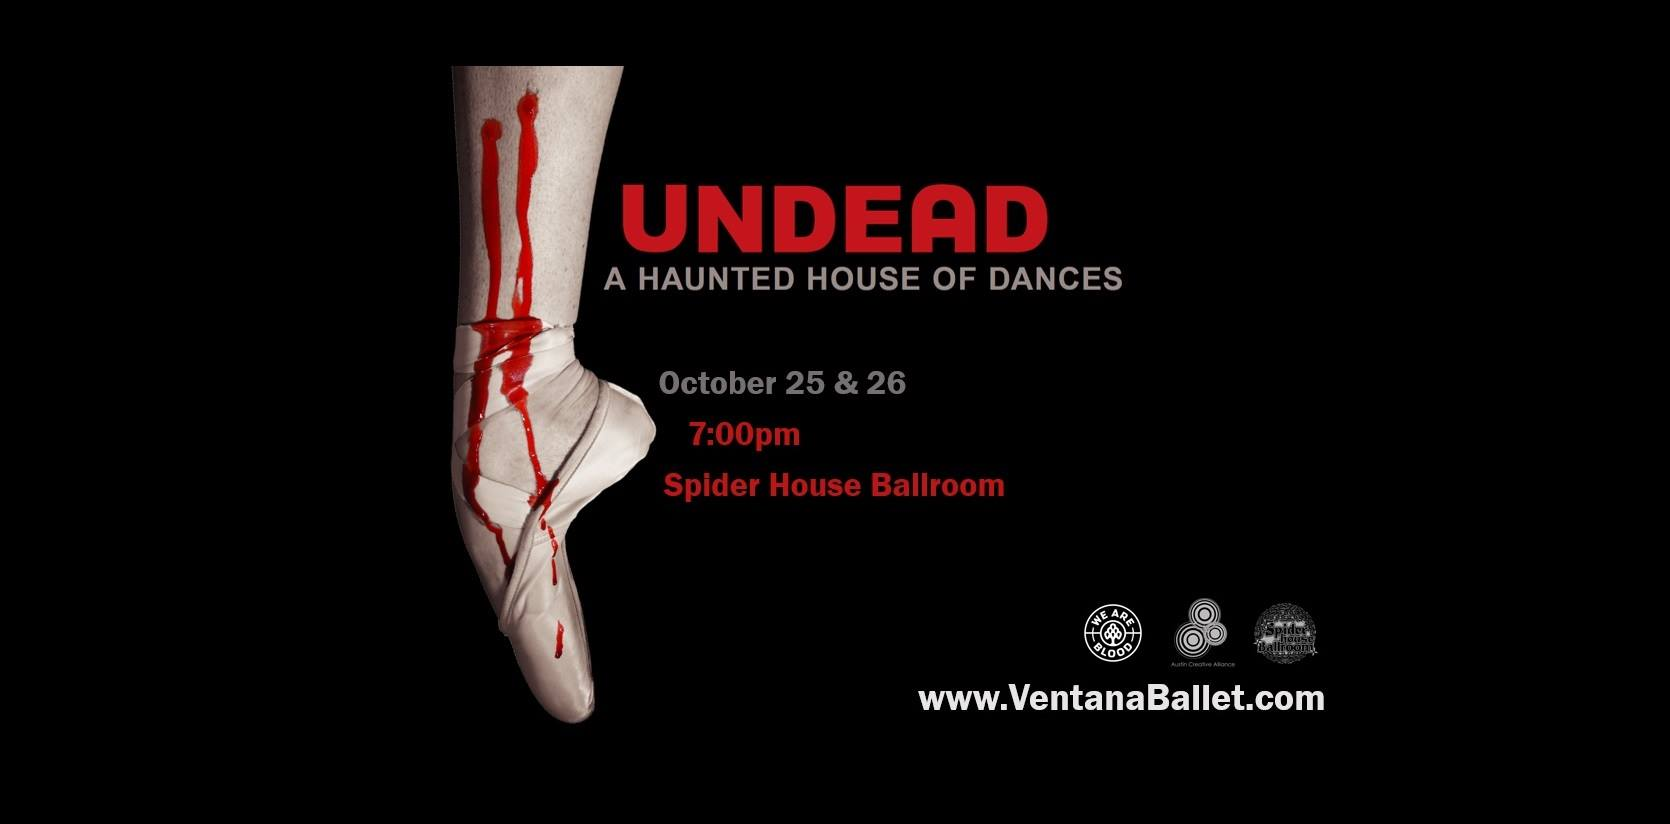 UnDEAD Haunted House of Dances